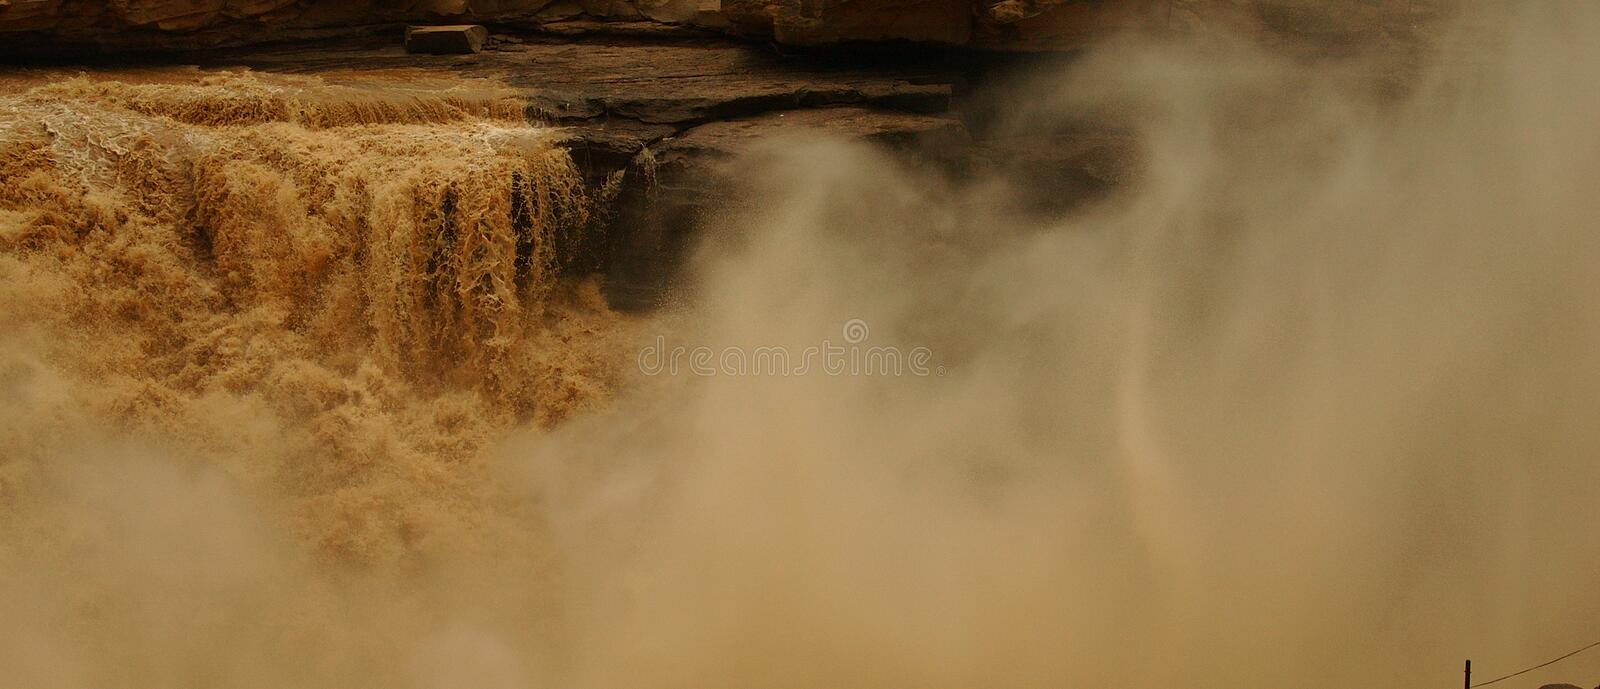 Hukou Waterfalls (Kettle Spout Falls). The Hukou Waterfall, the largest waterfall on the Yellow River, China, the second largest waterfall in China, is located stock images